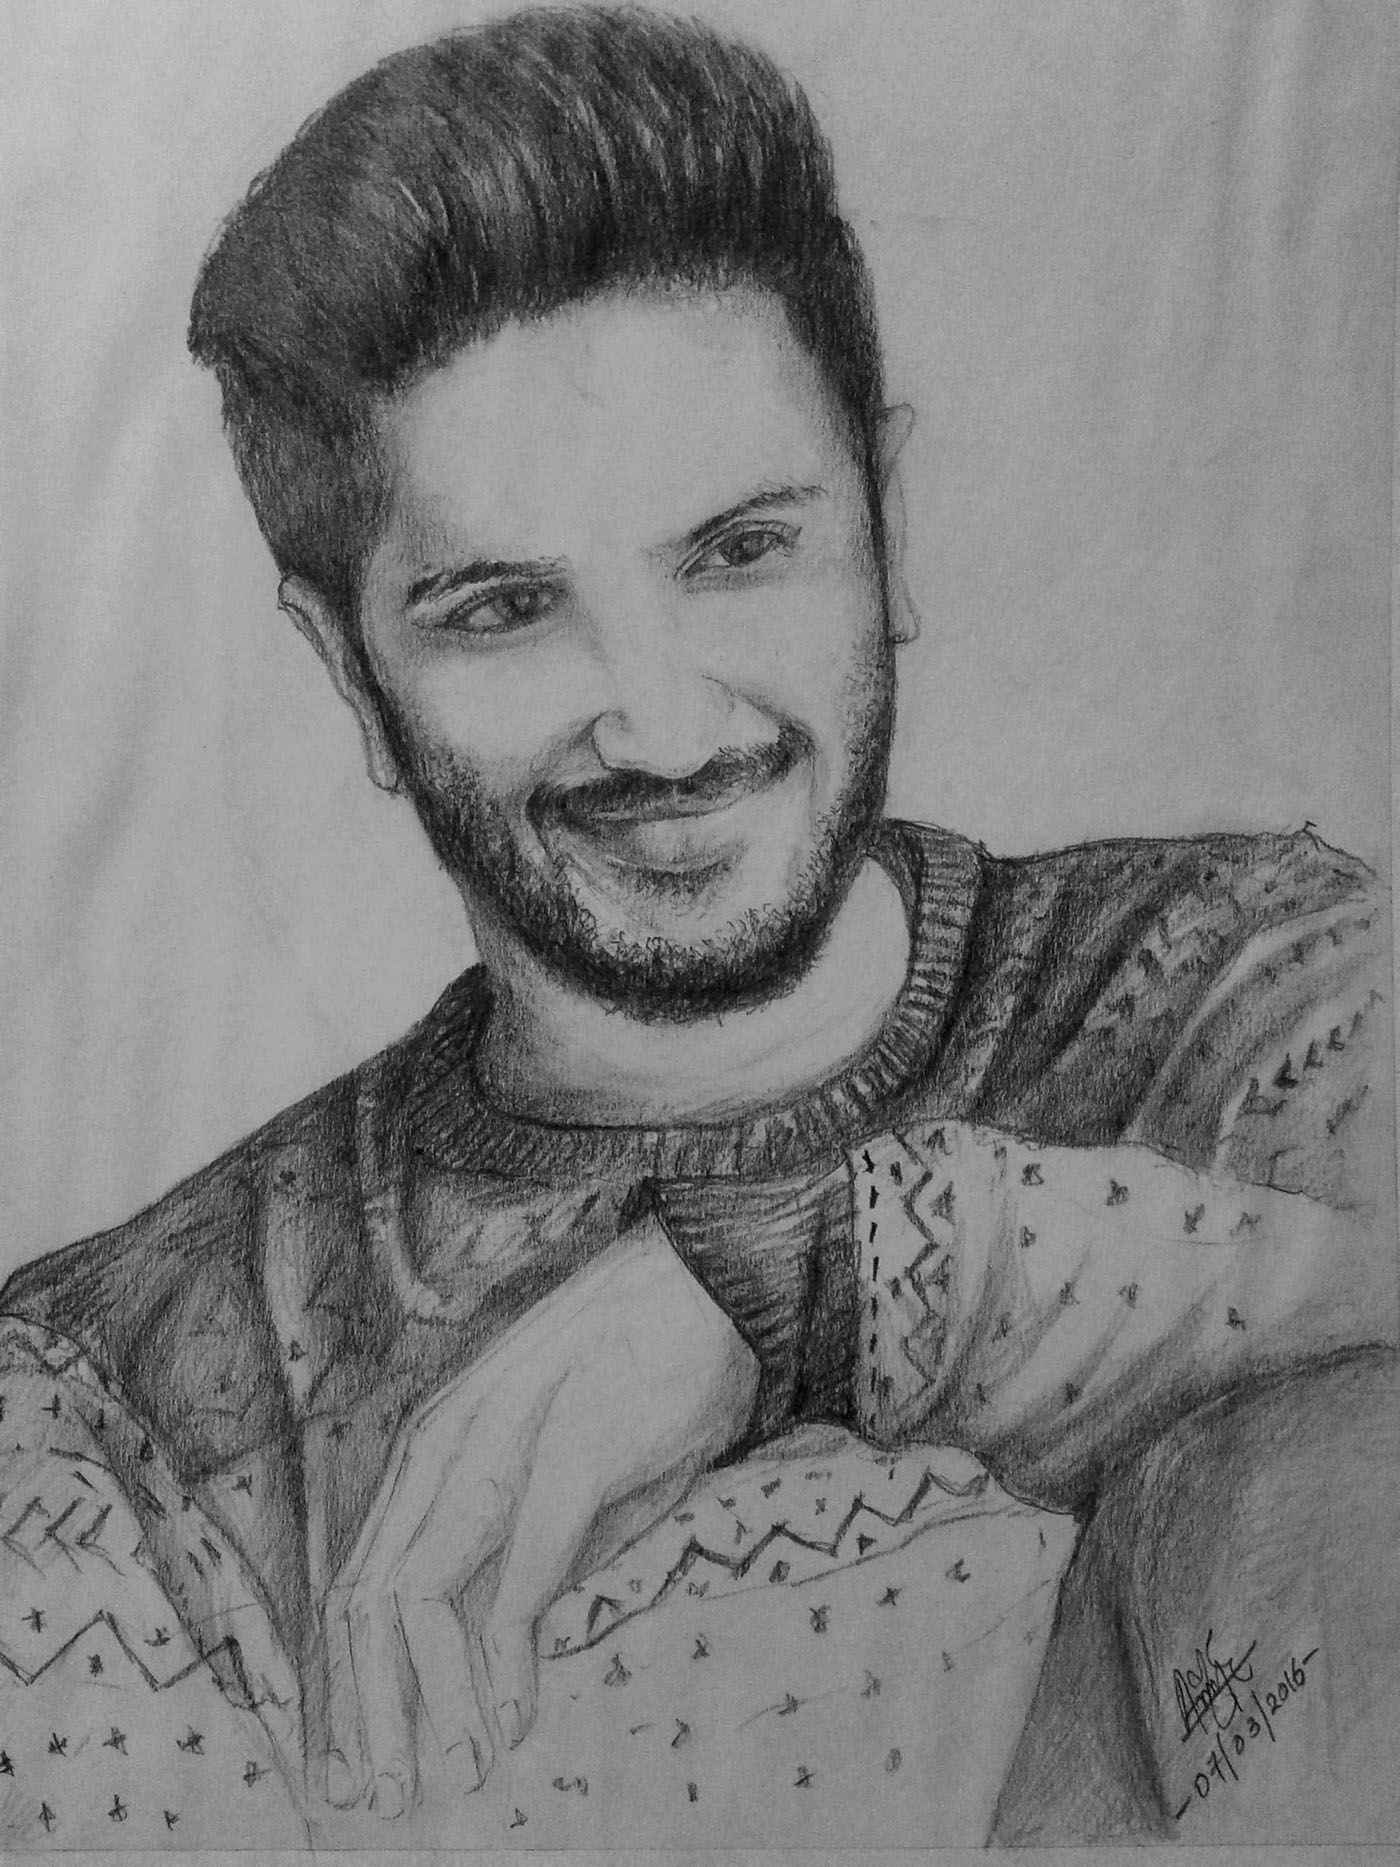 Behance editing dulquer salmaan sketch sketches behance